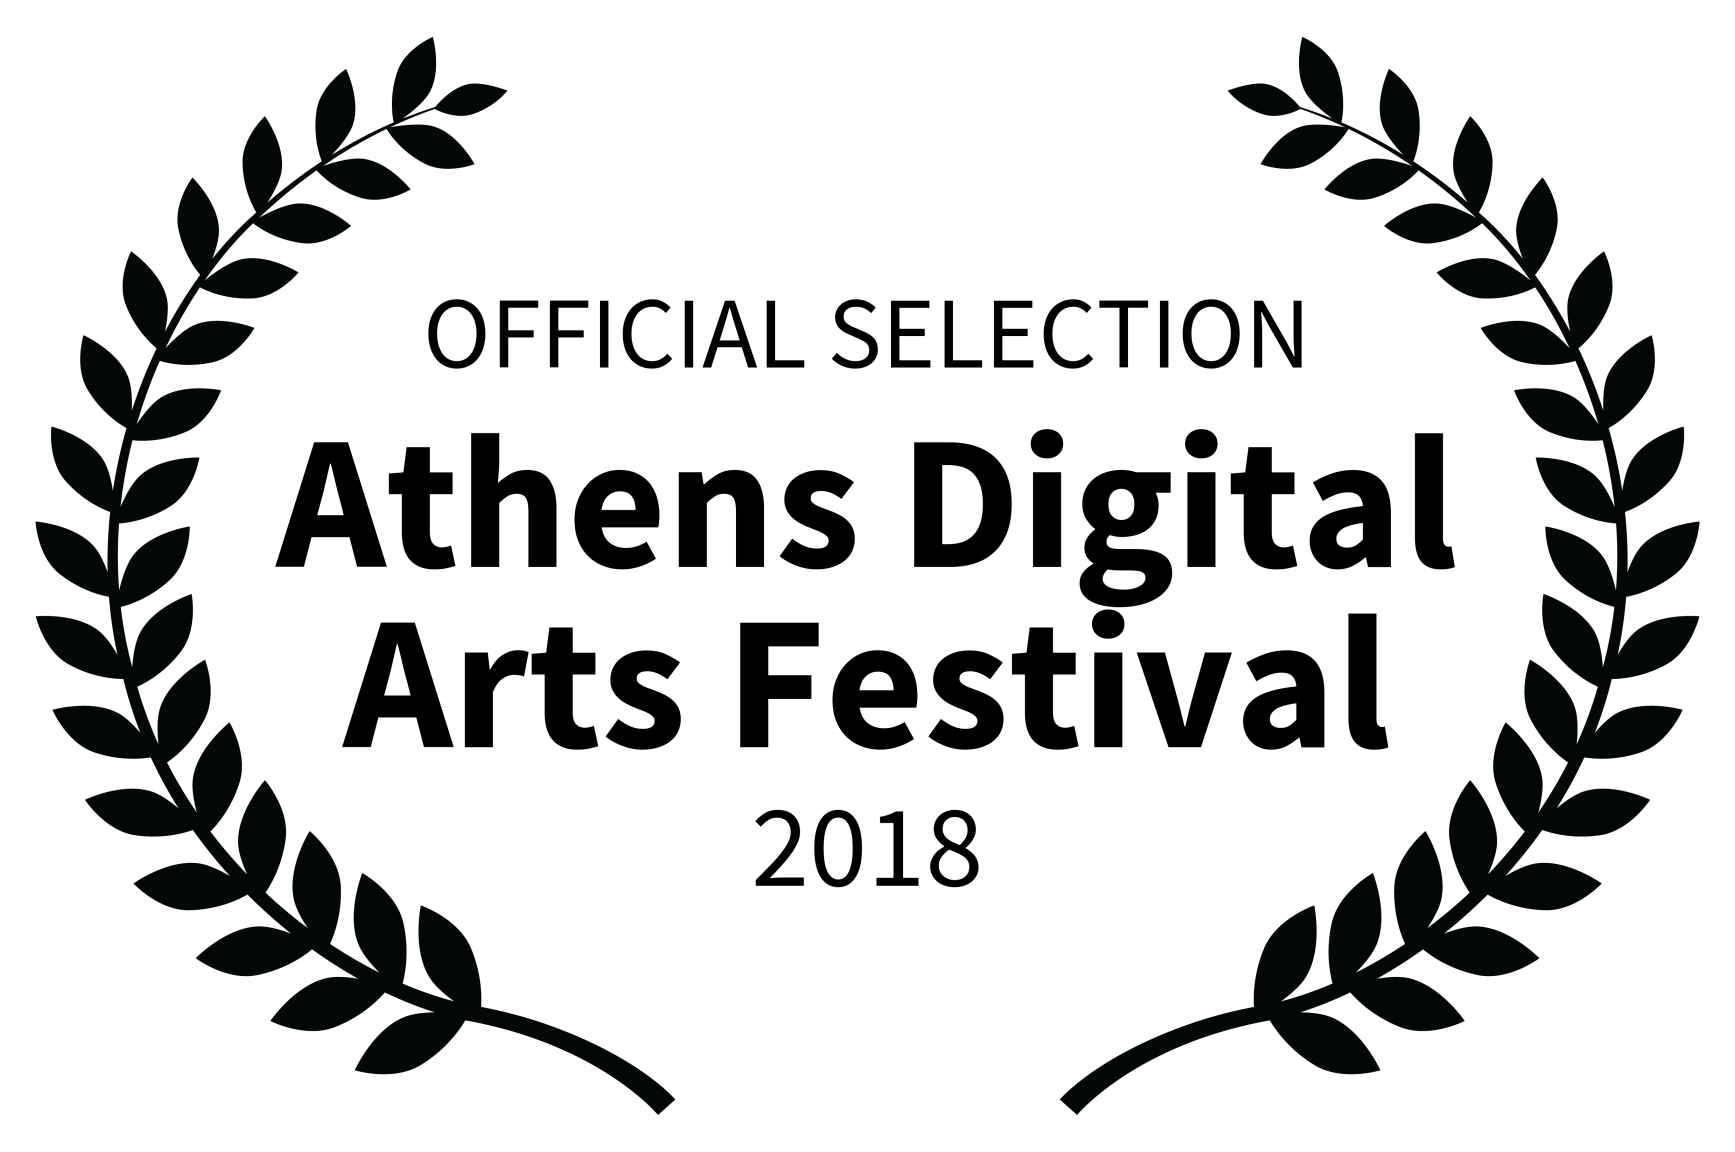 OFFICIAL SELECTION - Athens Digital Arts